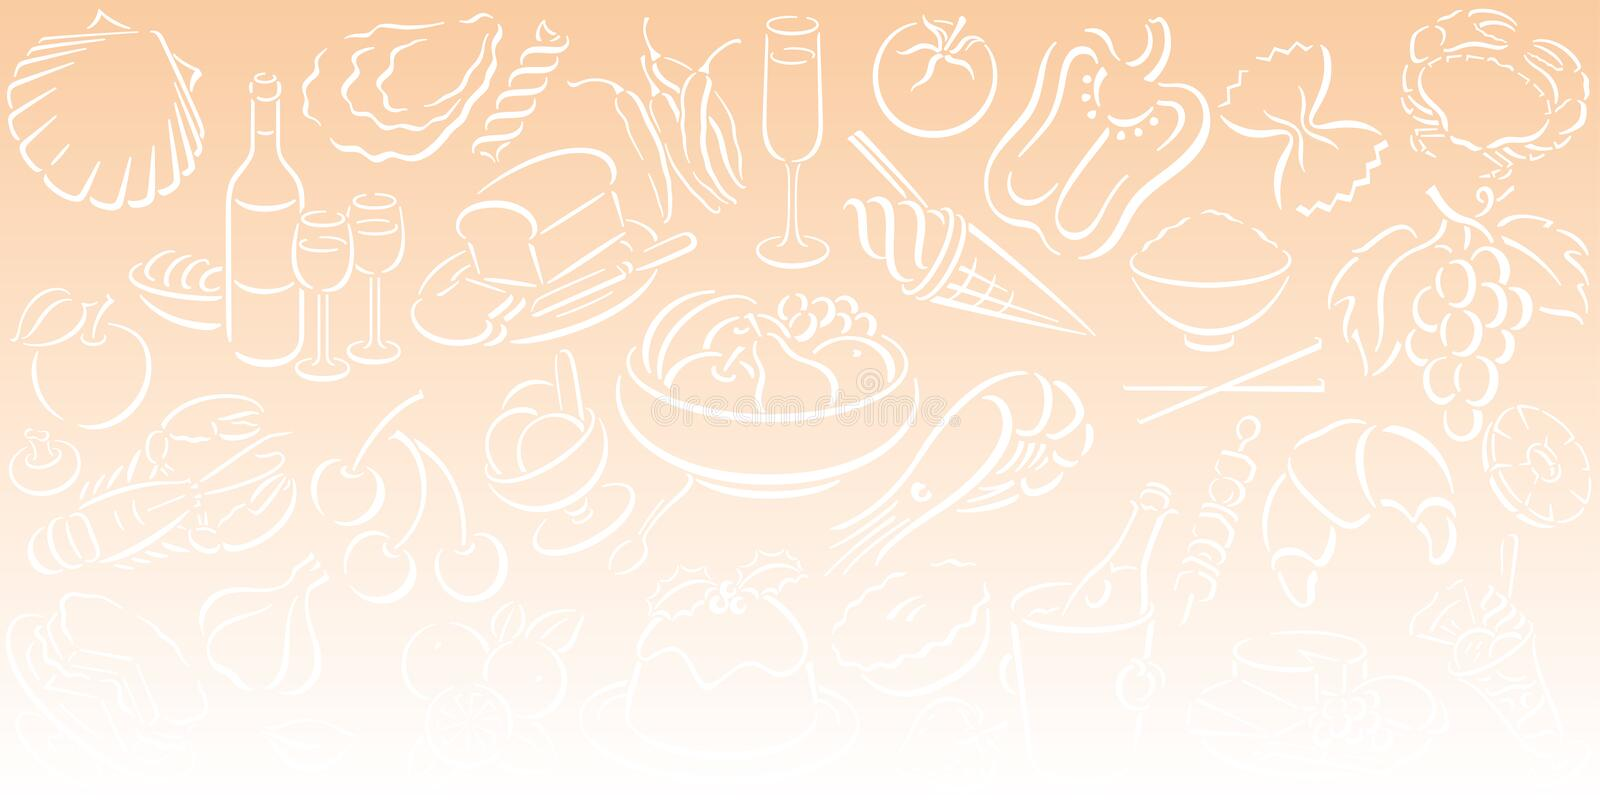 Background with food symbols royalty free illustration